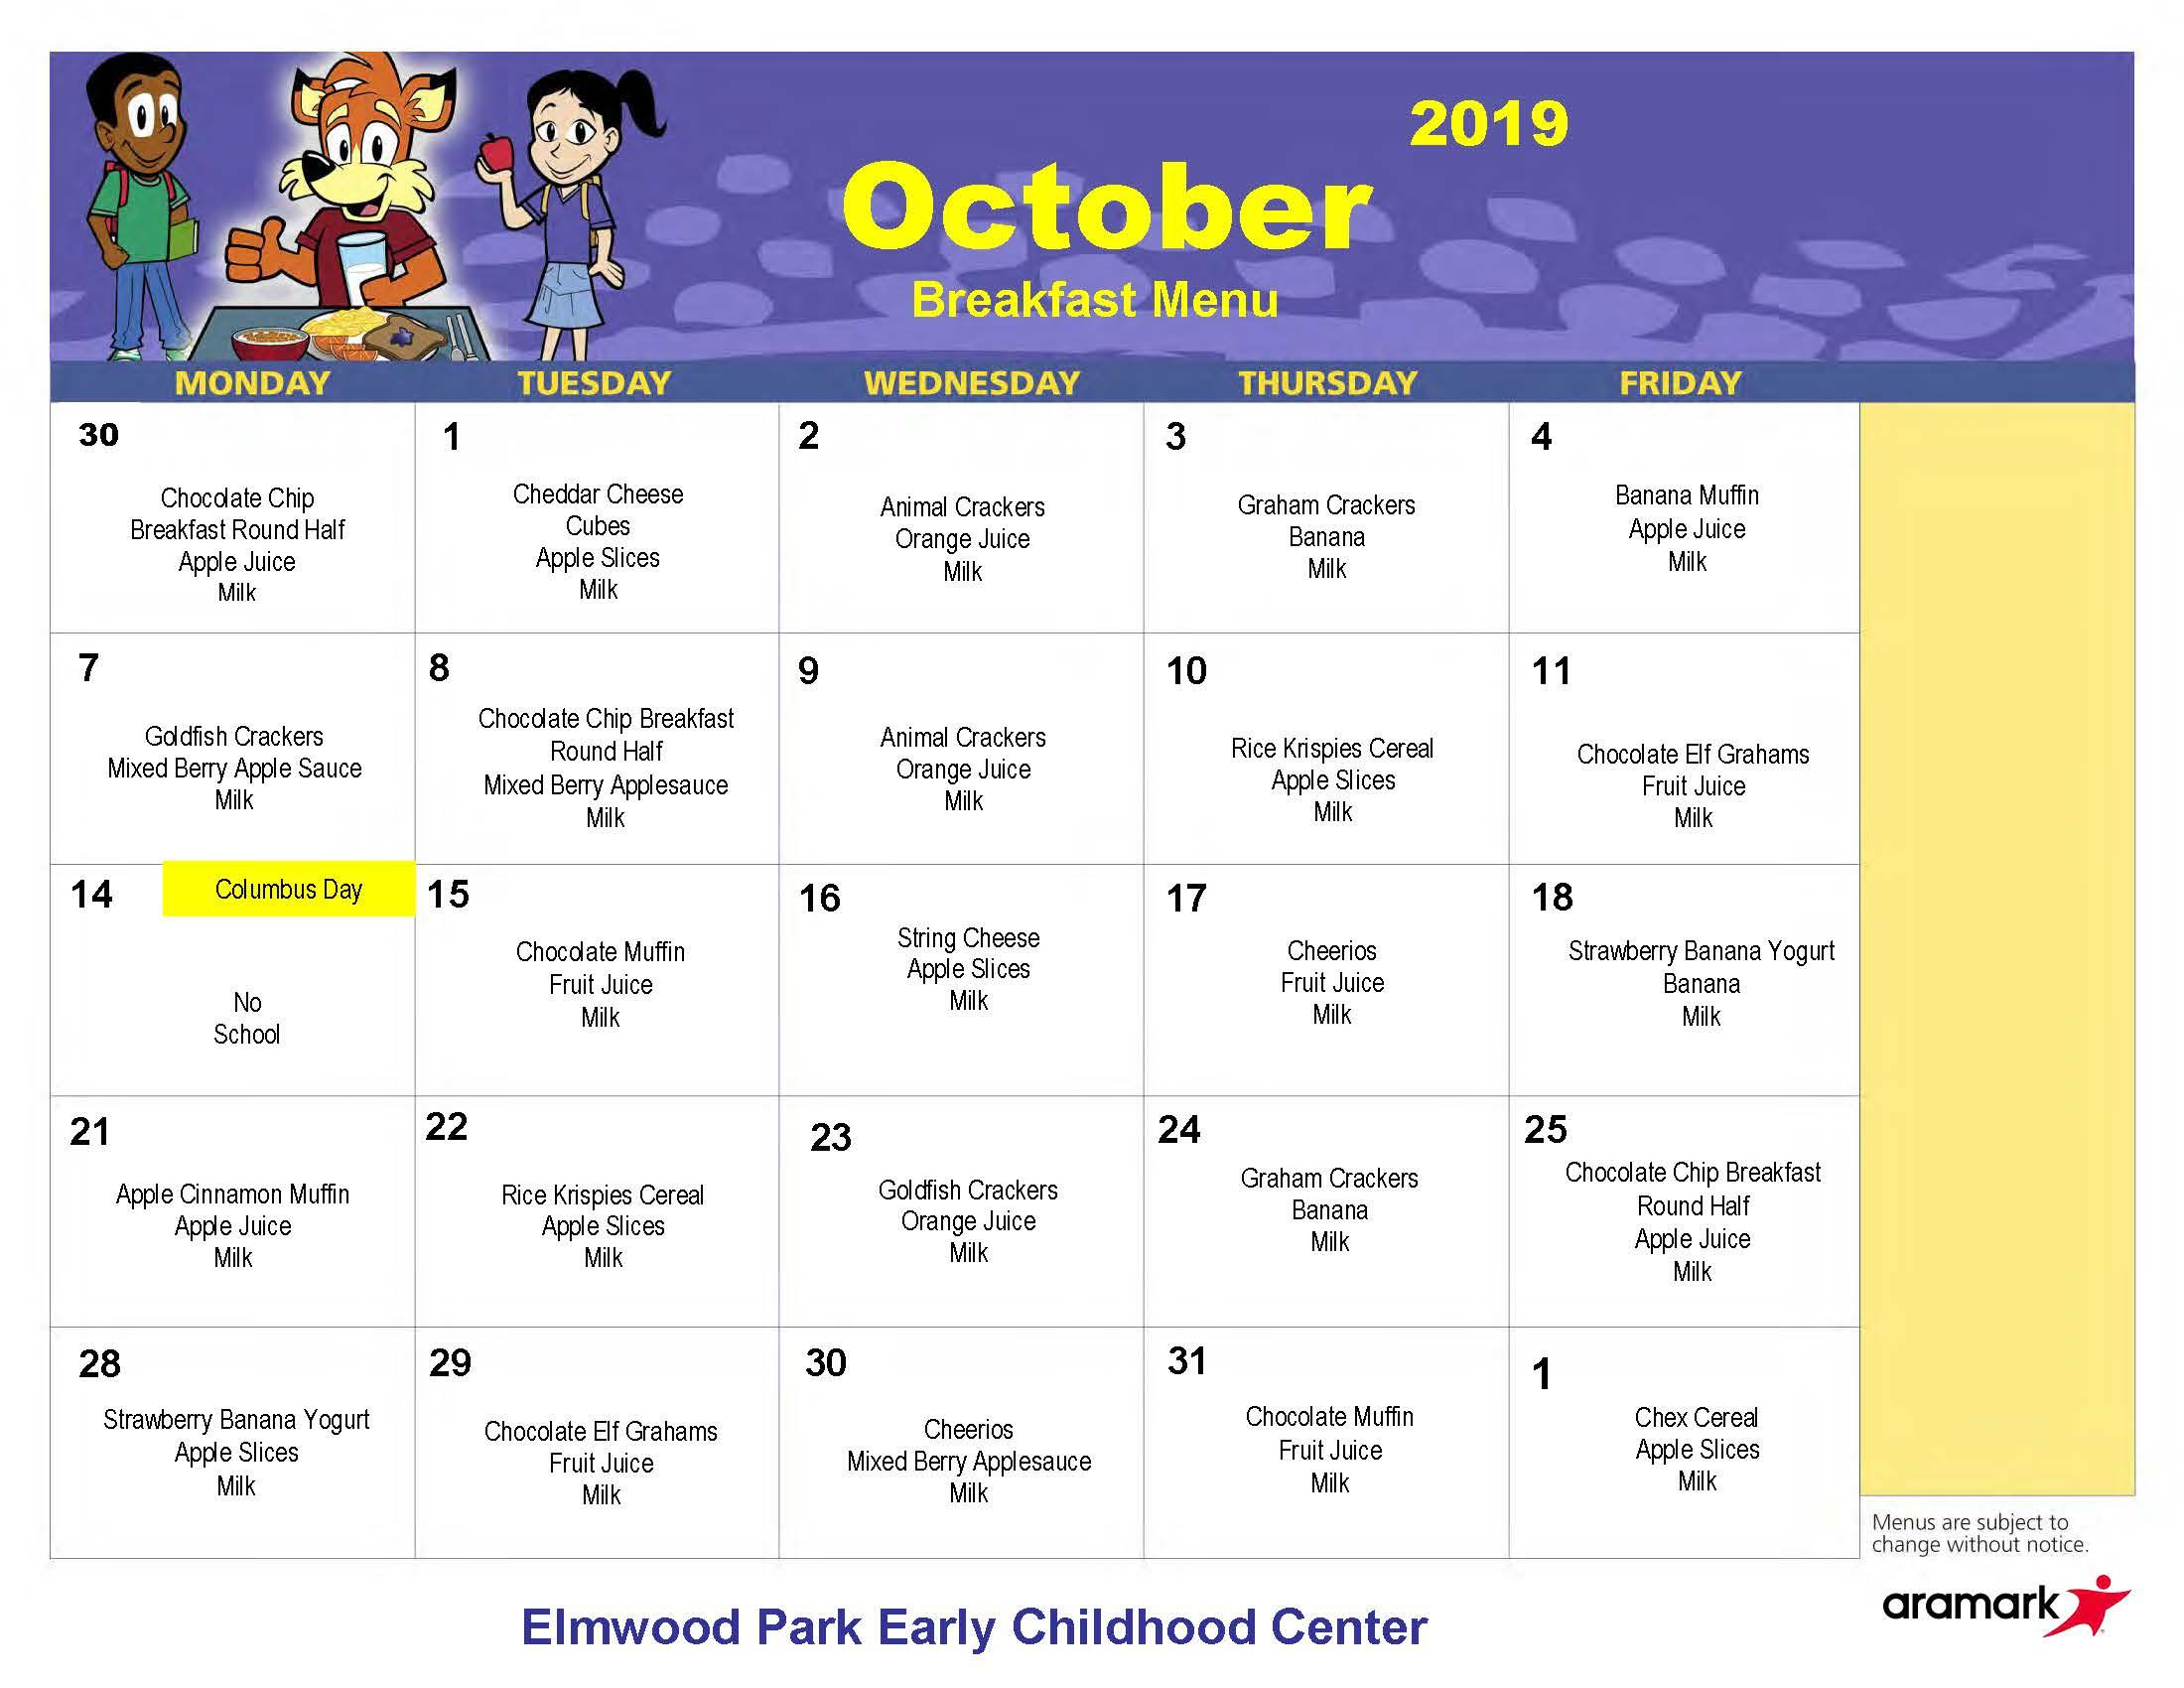 ECC Breakfast Menu, October 2019